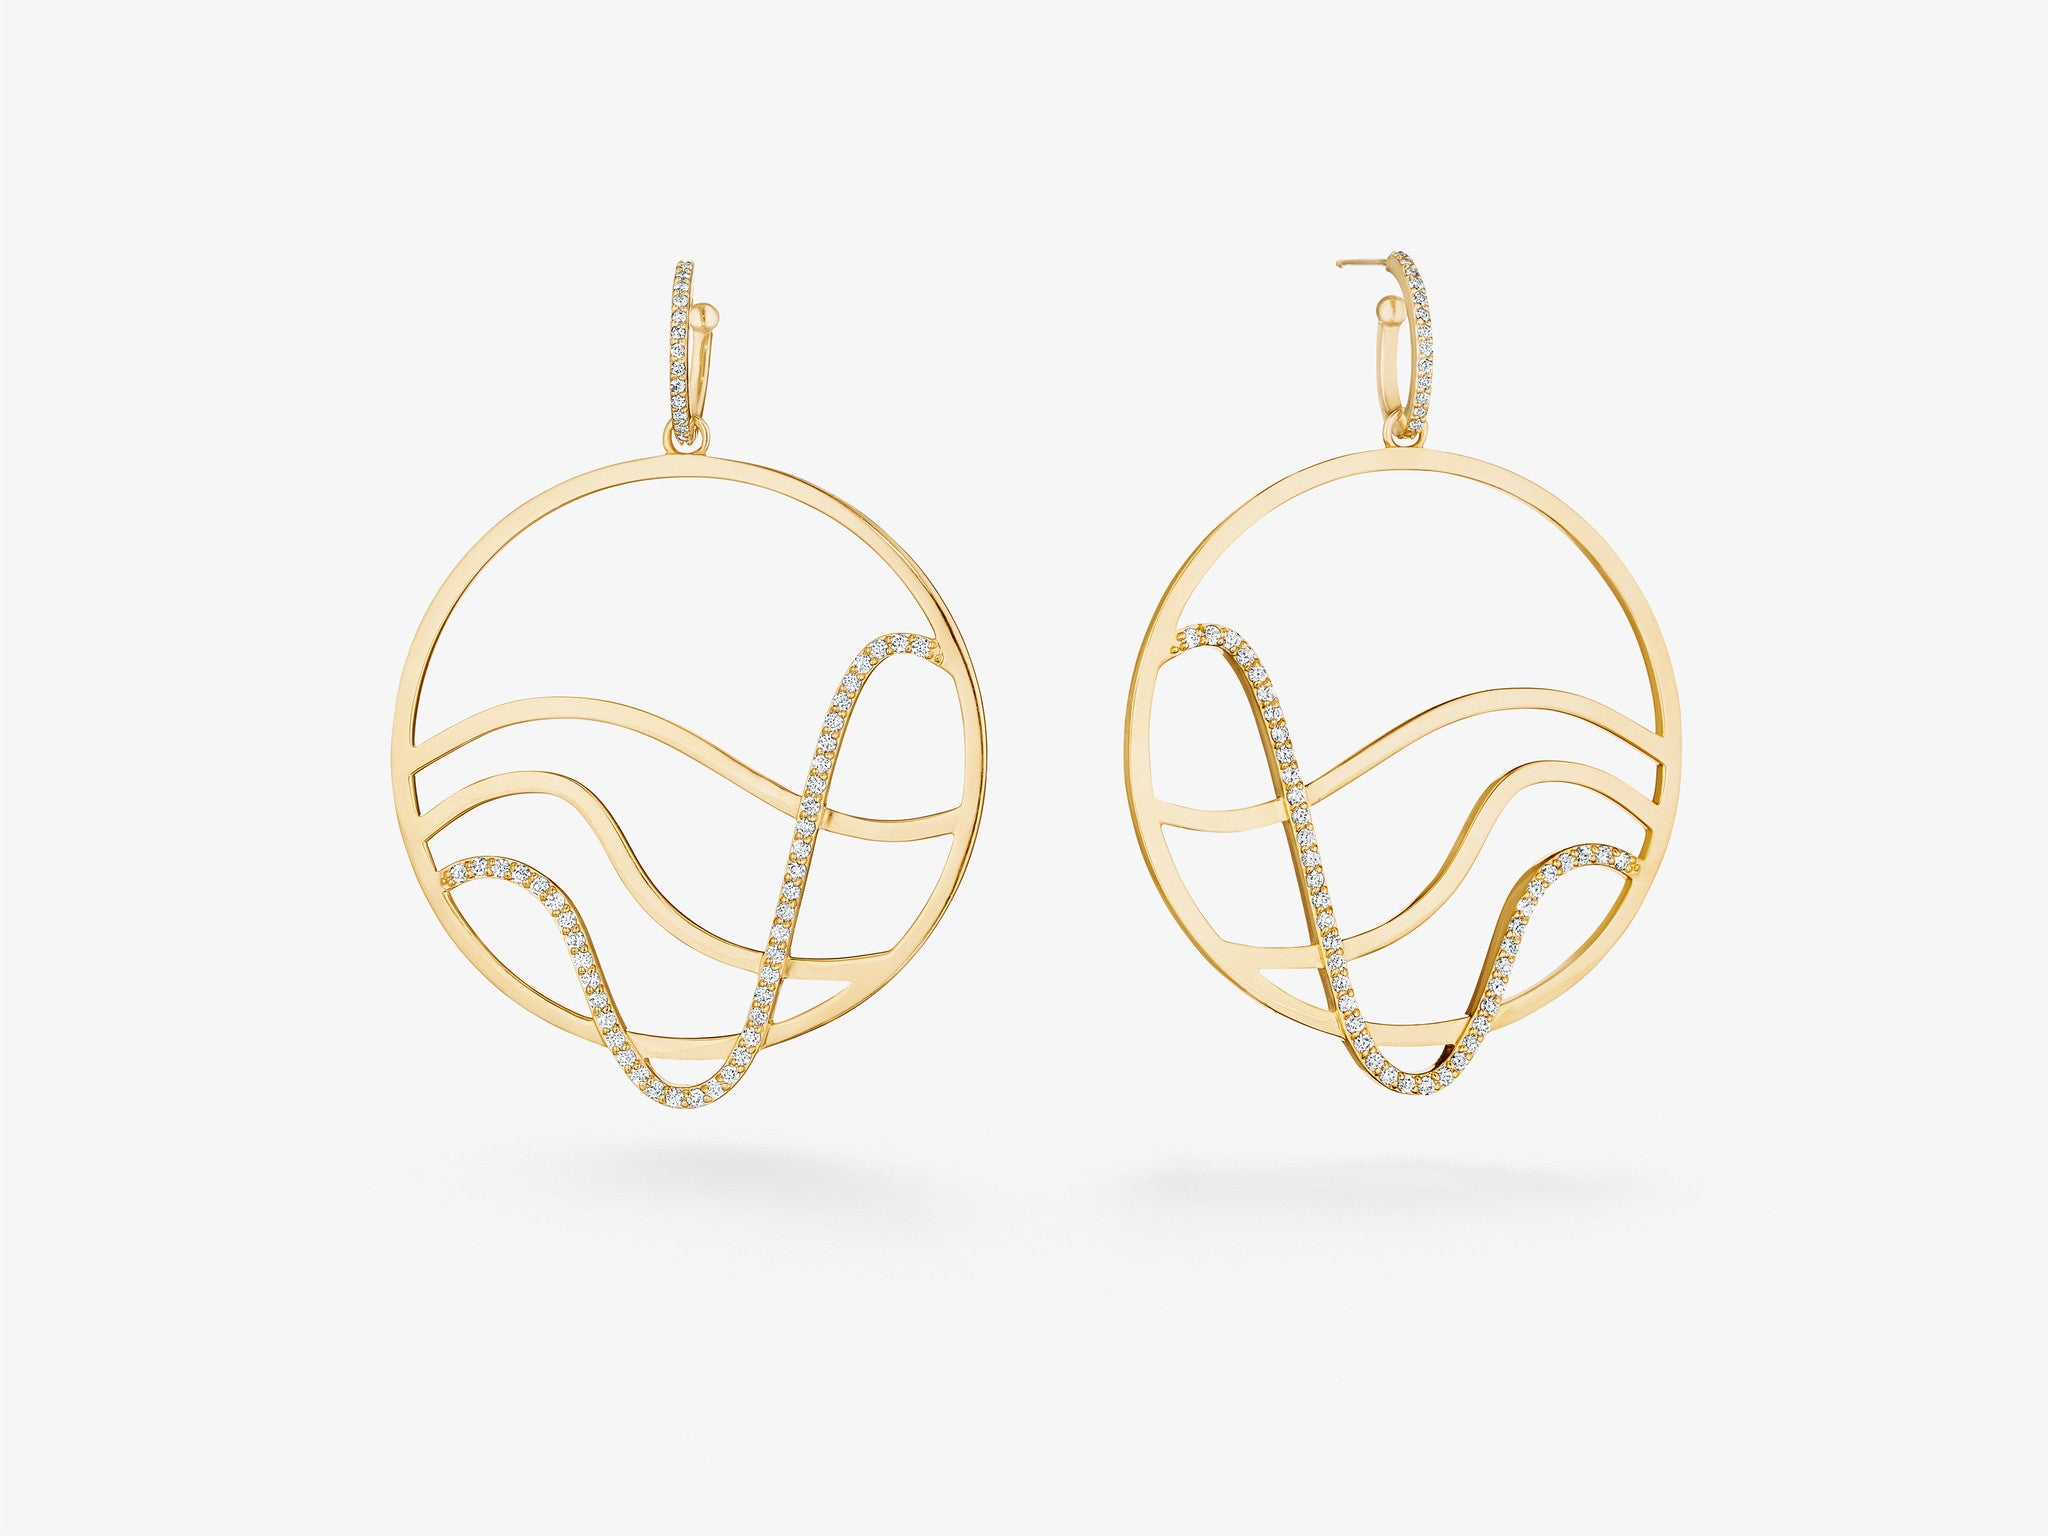 Open Hoop Earrings with Curved Lines and Single Row Diamond Pavé Detail